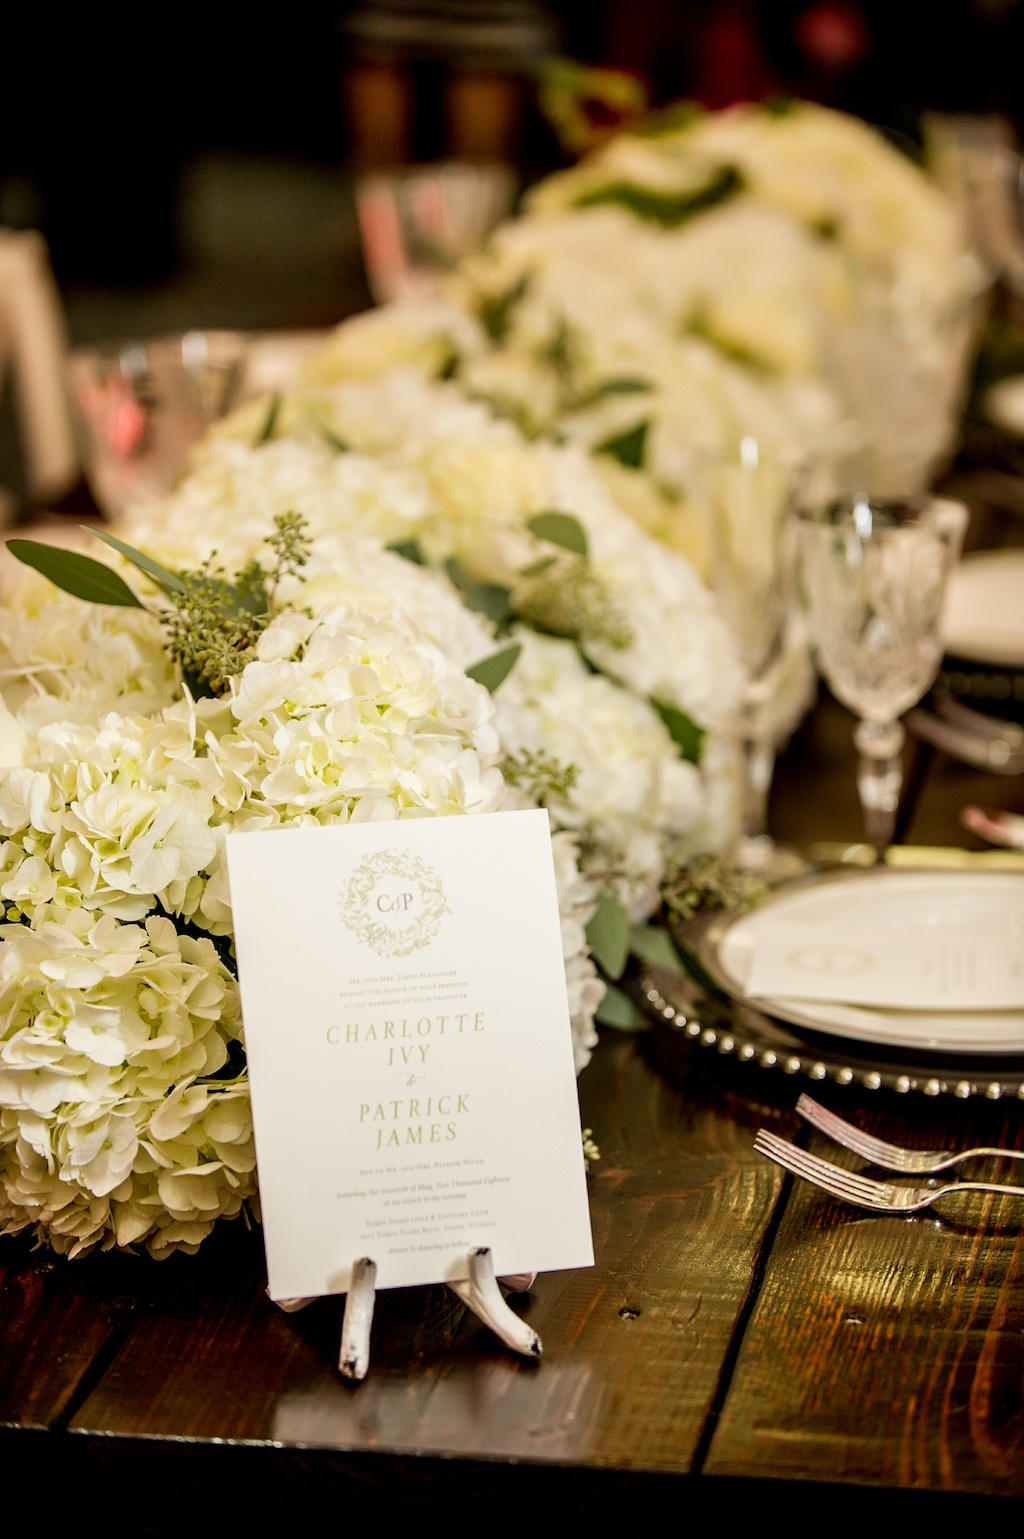 Elegant Southern Wedding Reception Table Decor Details with White Hydrangea with Greenery Garland Centerpiece on Natural Wood Farmhouse Table, and Green Floral and White Wedding Program | Tampa Bay Wedding Planner Love Lee Lane | Tampa Wedding Paper Goods Company A&P Designs | Florist and Rentals Gabro Event Services